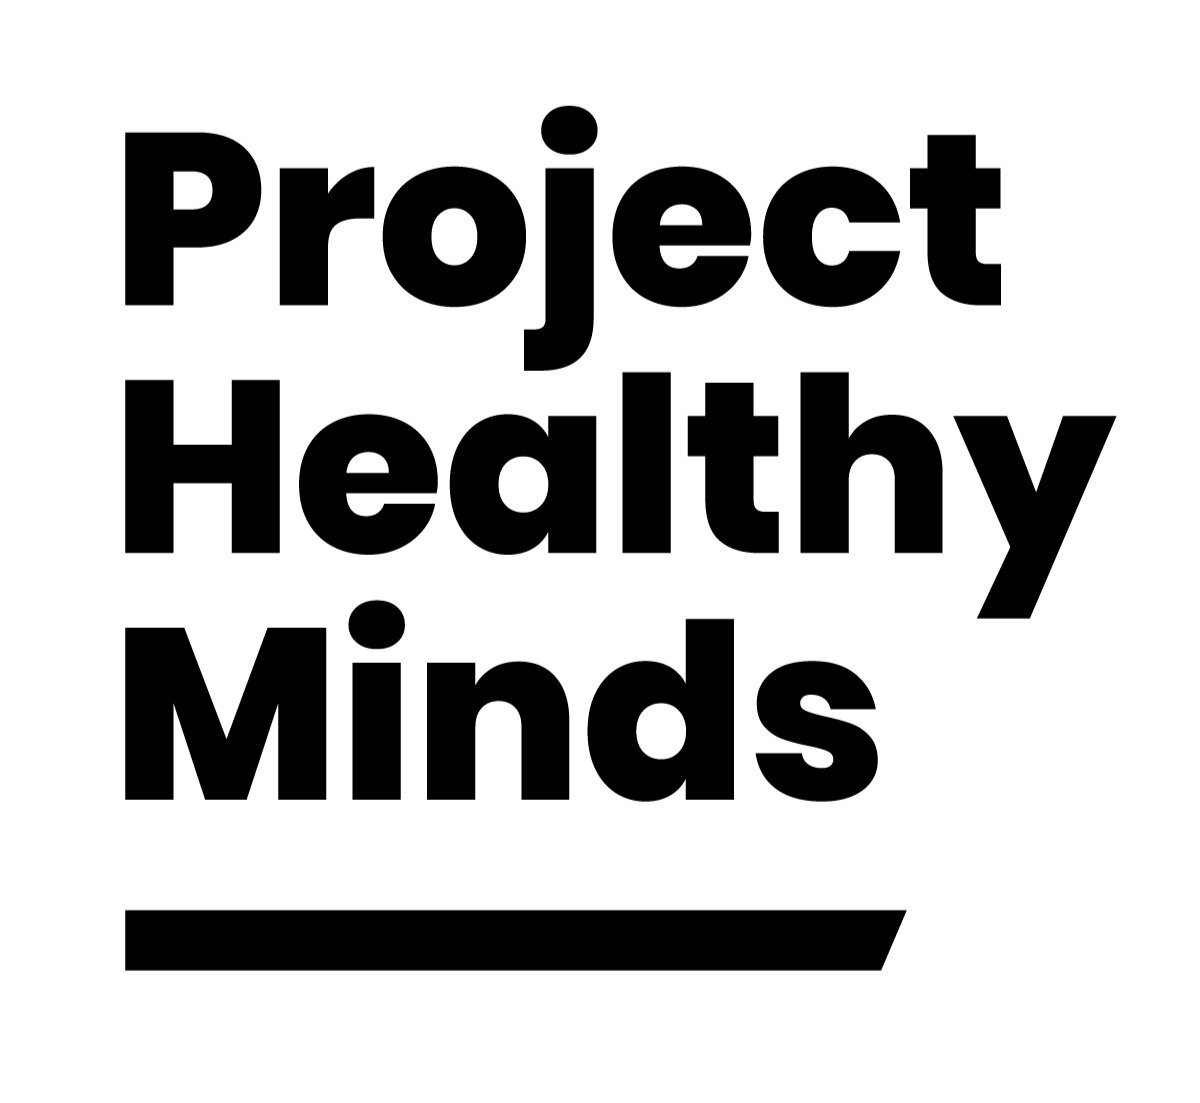 Project Healthy Minds